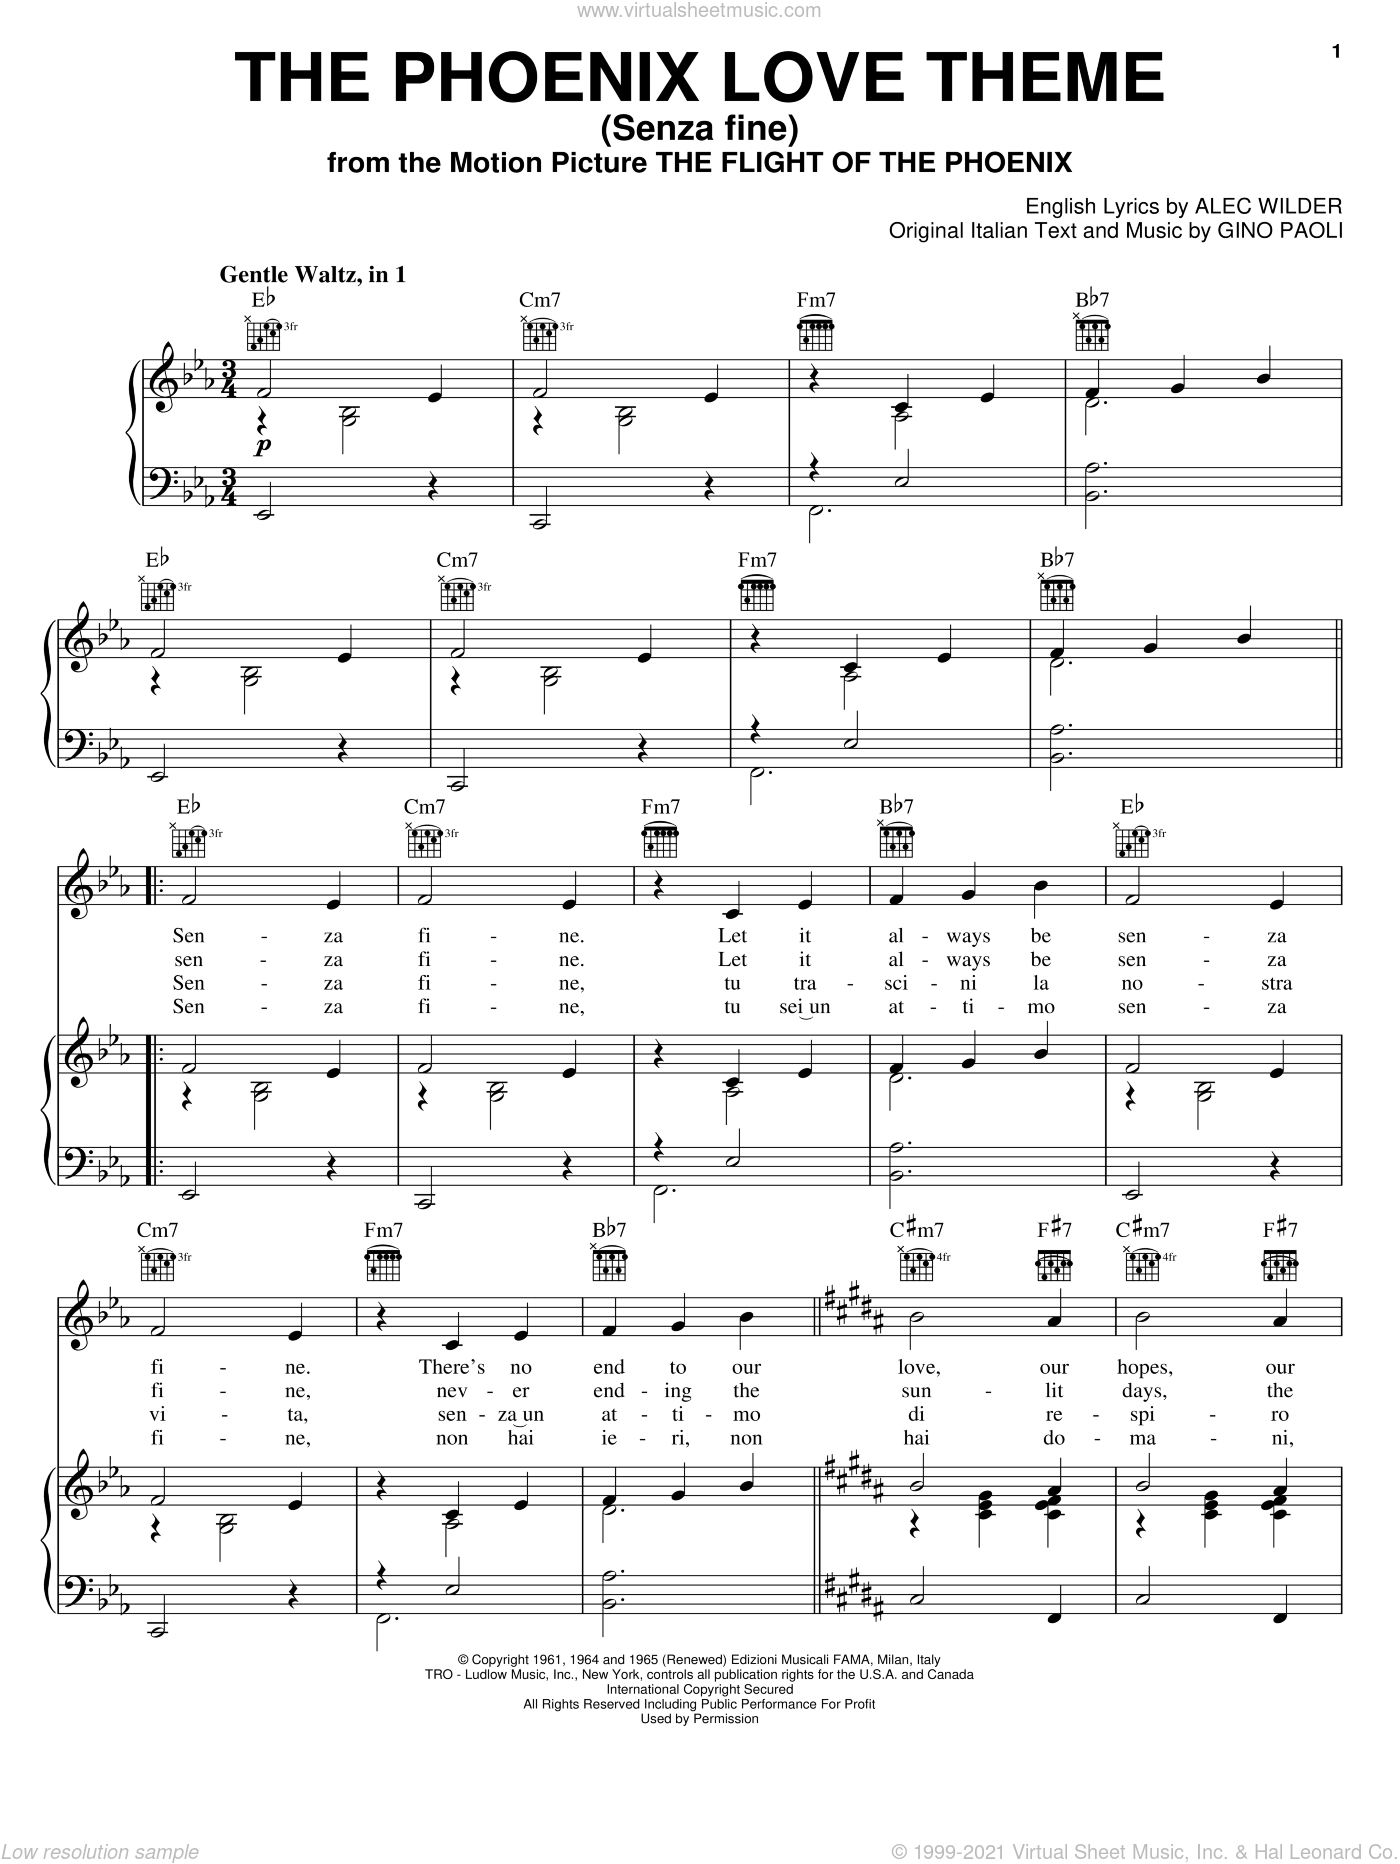 The Phoenix Love Theme (Senza Fine) sheet music for voice, piano or guitar by Alec Wilder and Gino Paoli. Score Image Preview.